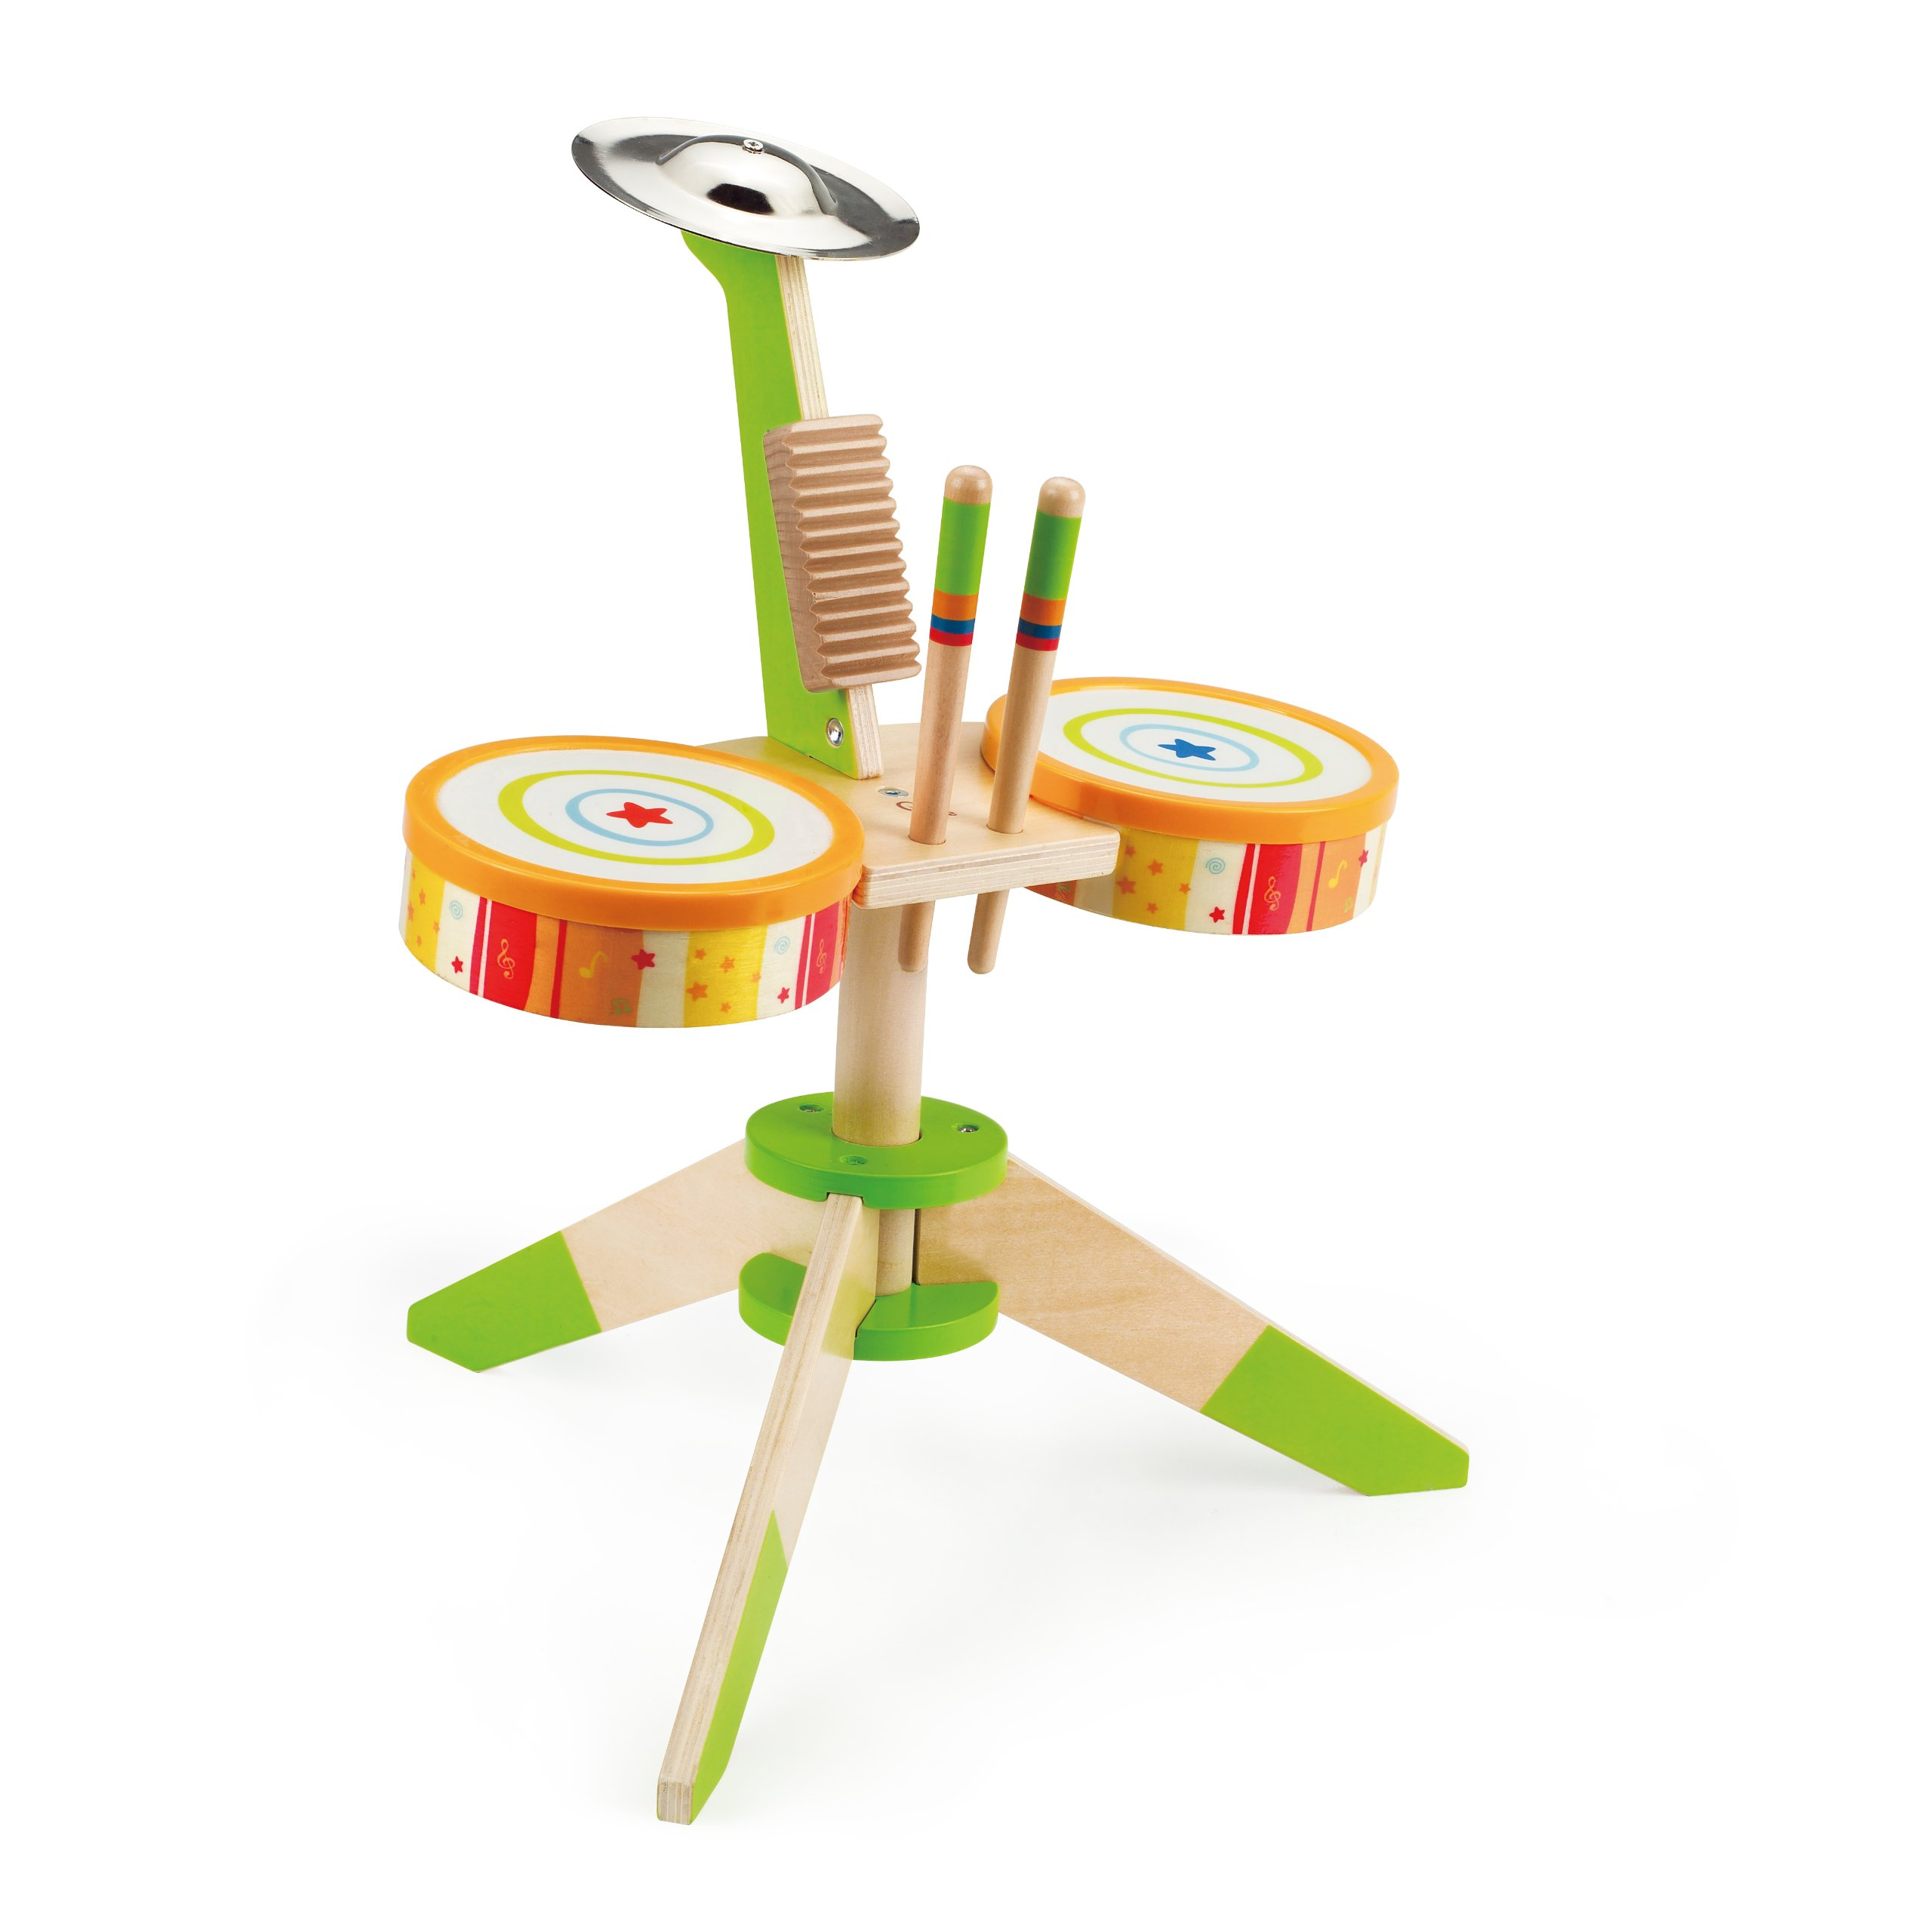 Award Winning Hape Rock and Rhythm Kid's Musical Instruments Wooden Drum Set